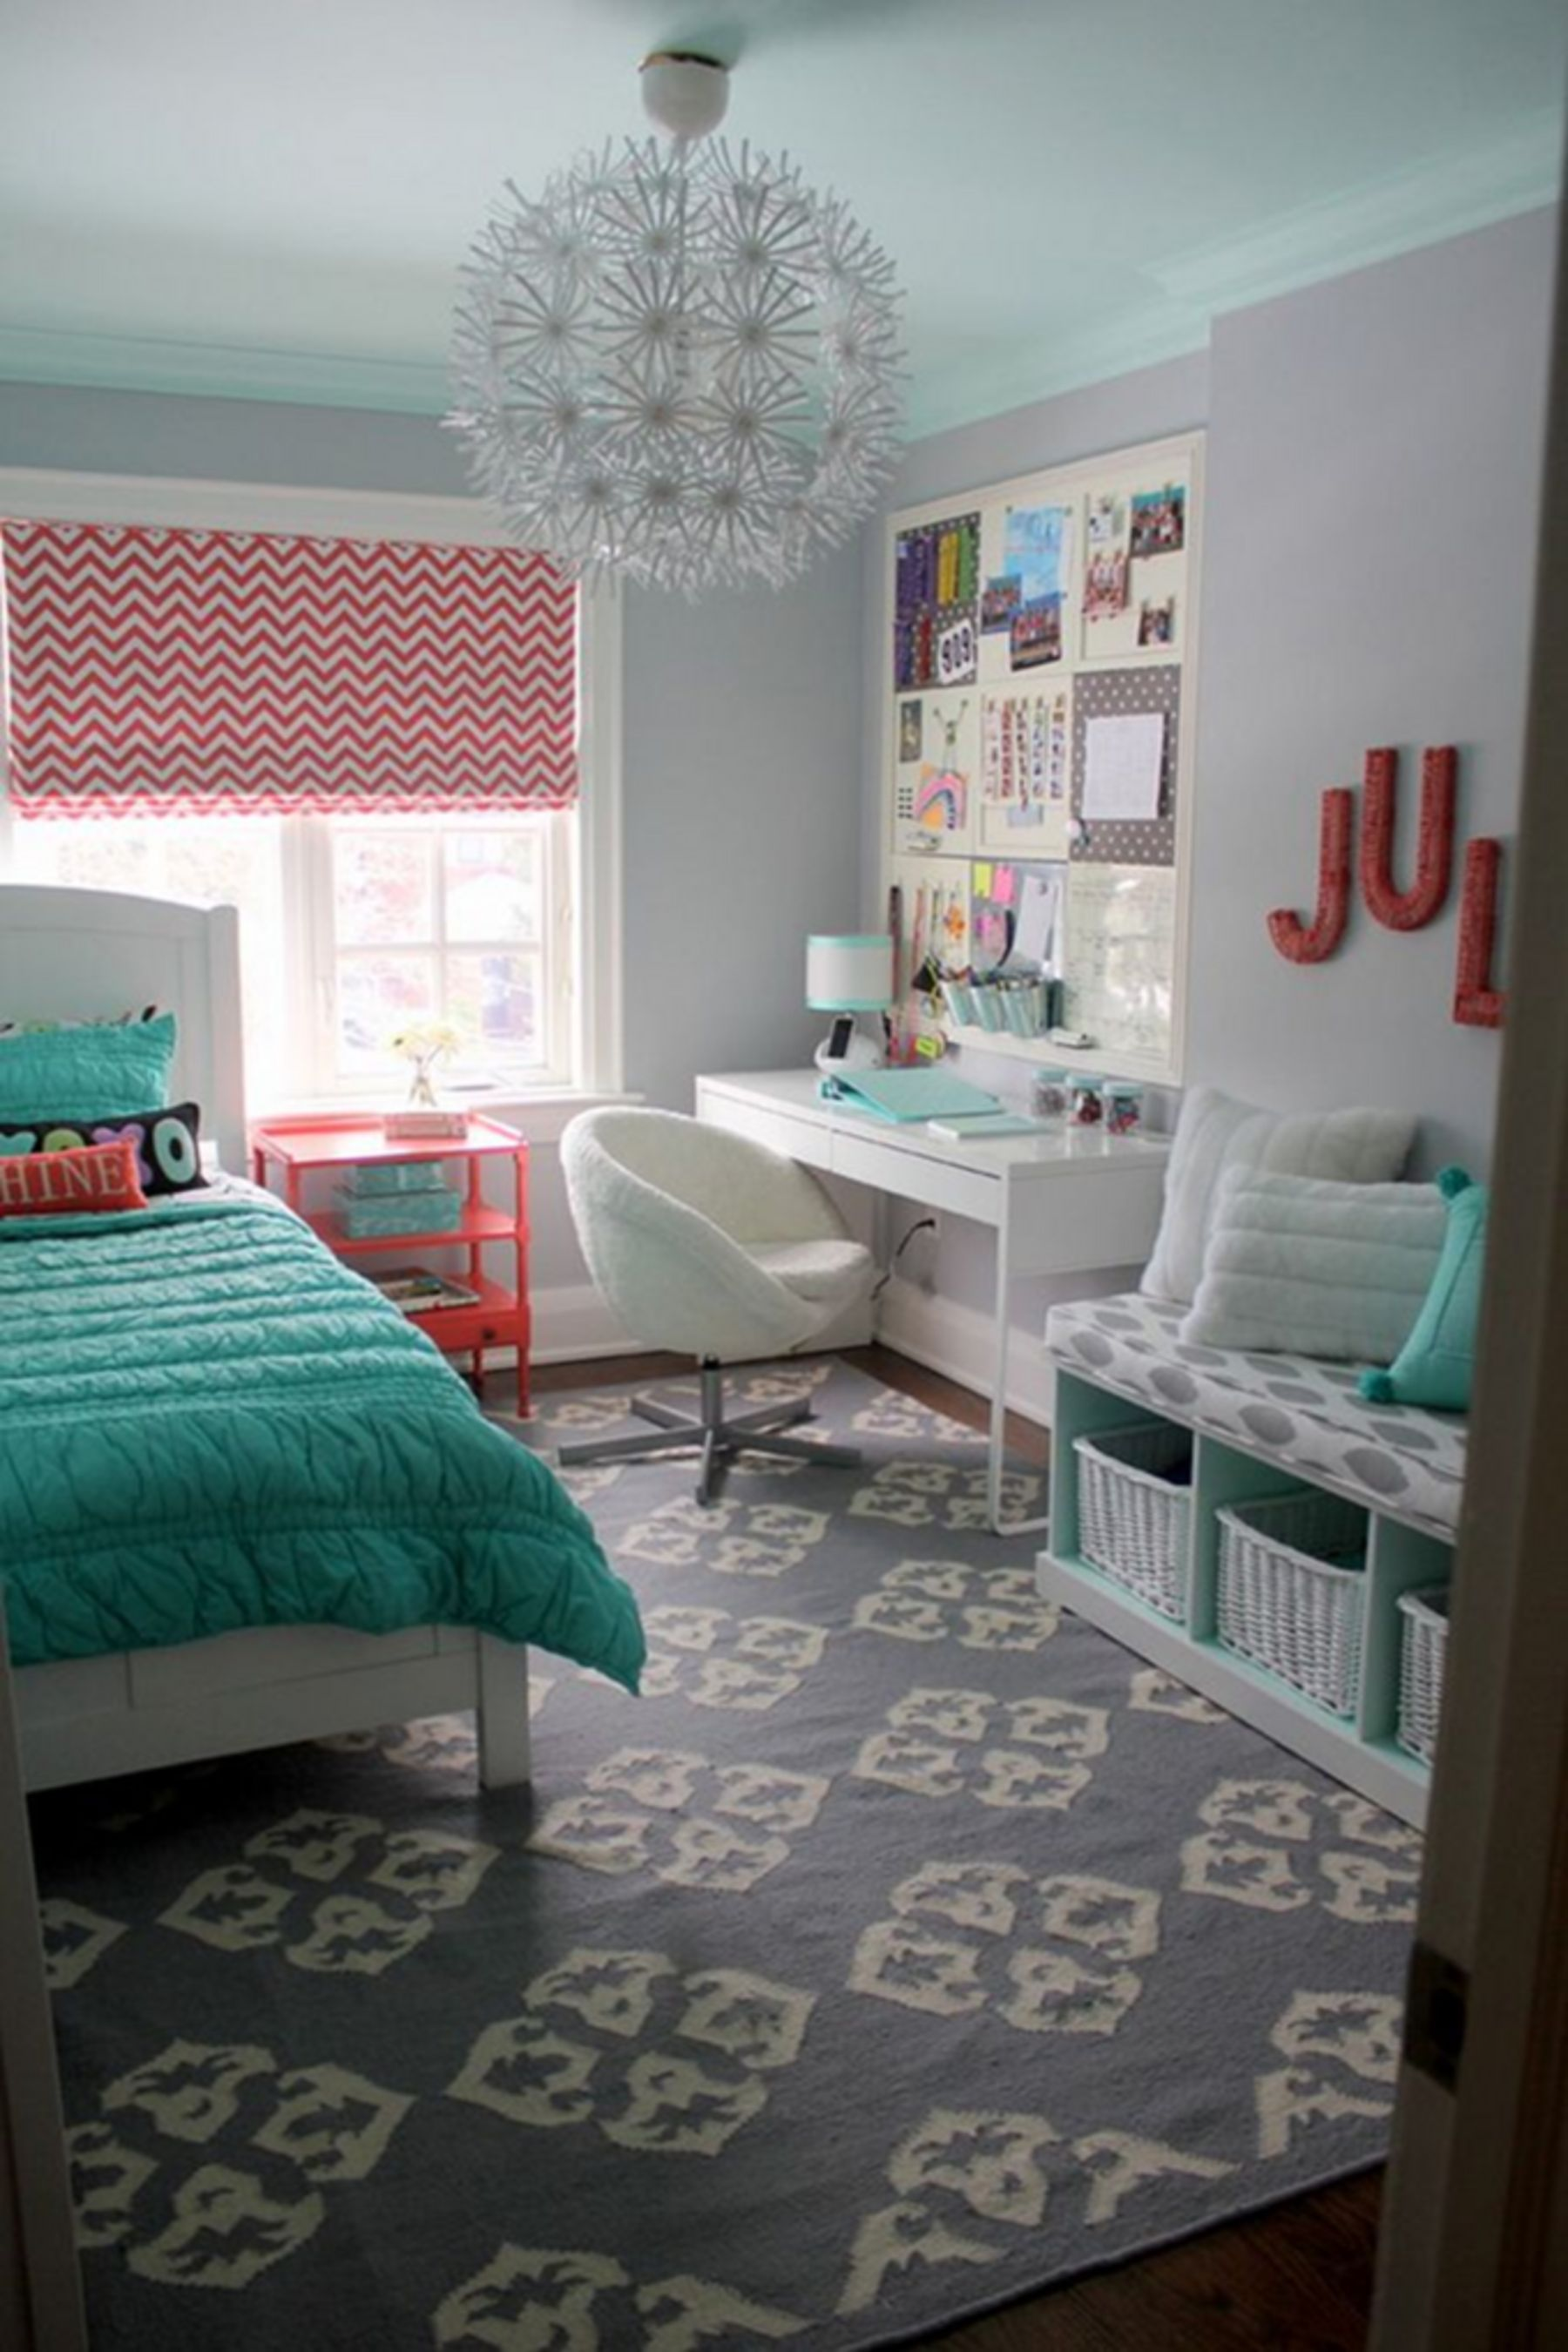 20+ Cute Teen Girl Bedroom Ideas With Pretty Color Schemes #girlsbedroom